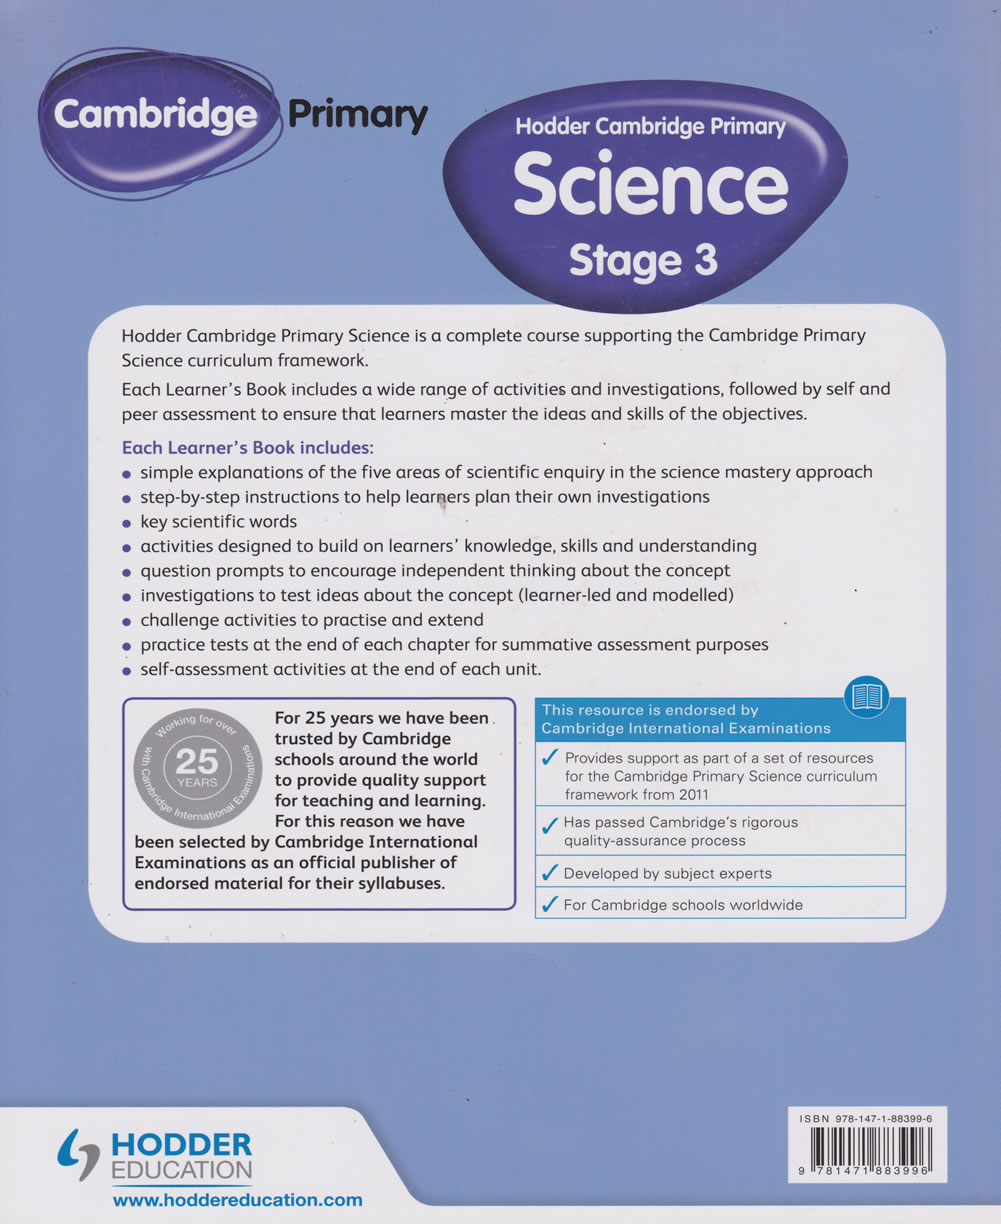 Hodder Cambridge Primary Science Learn 3 | Books, Stationery, Computers,  Laptops and more  Buy online and get free delivery on orders above Ksh